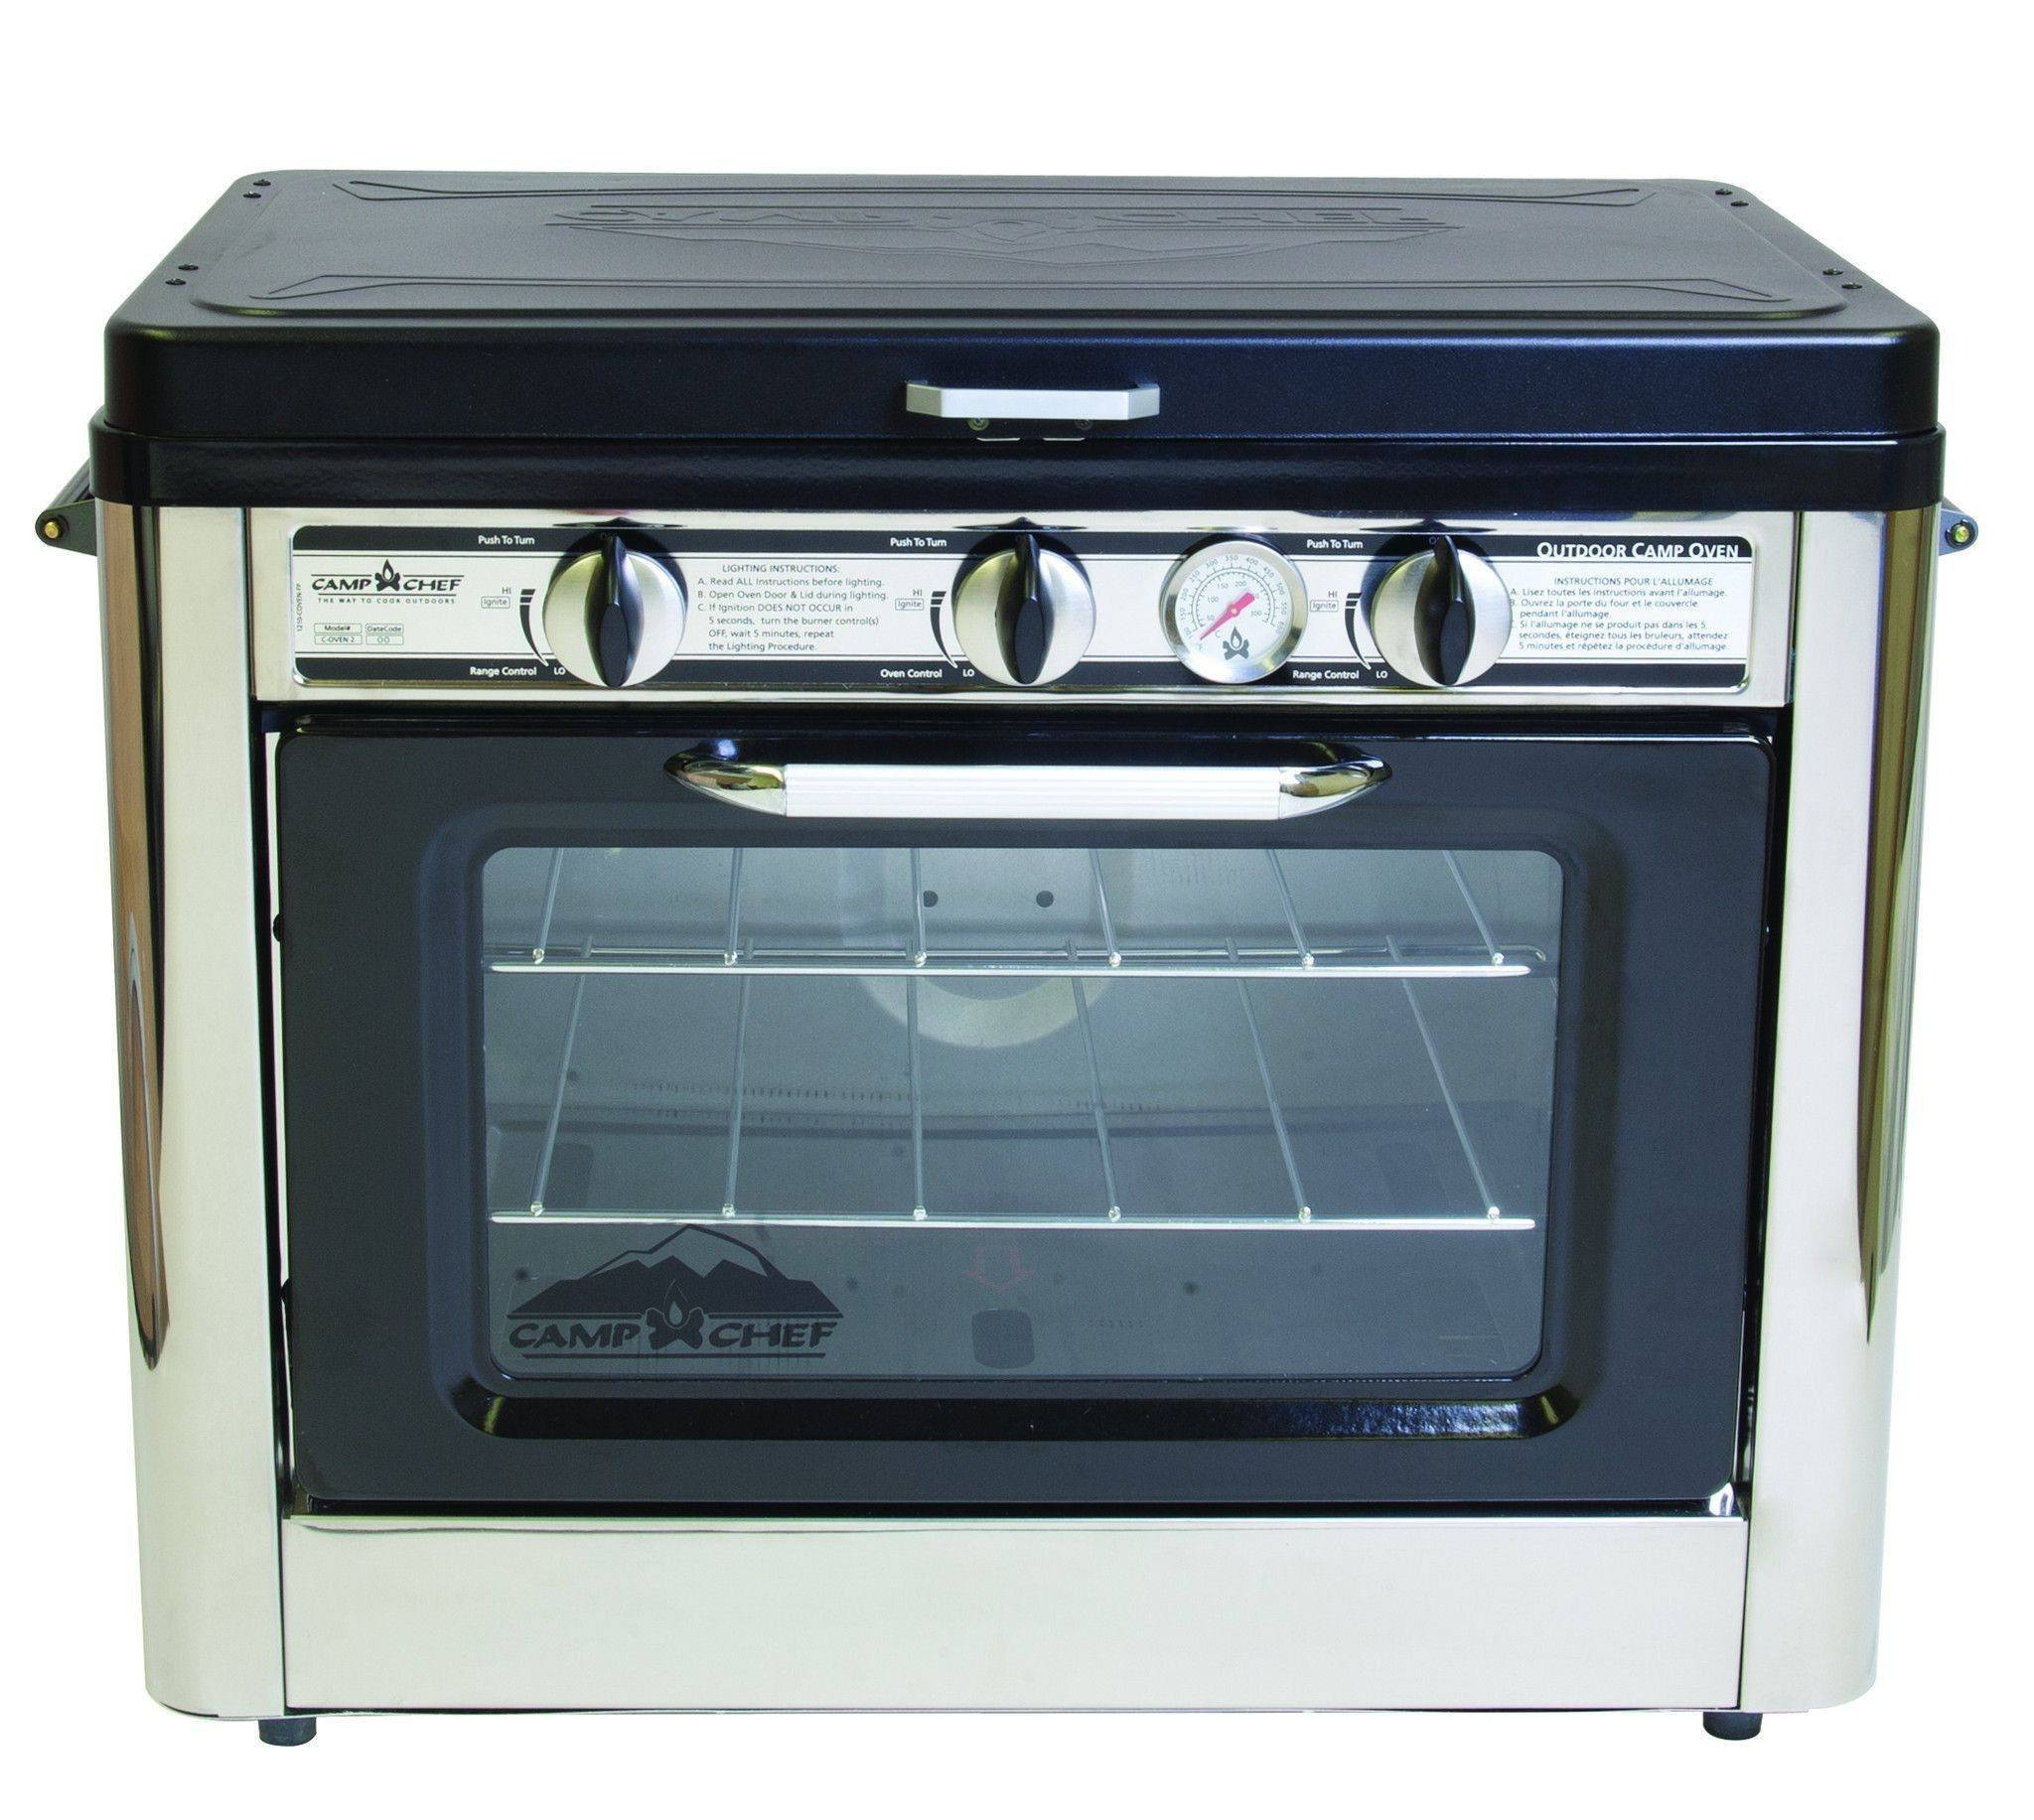 ... Deluxe Outdoor Oven   With Built In 2 Burner Stove Camp Stoves Trail  Kitchens ...